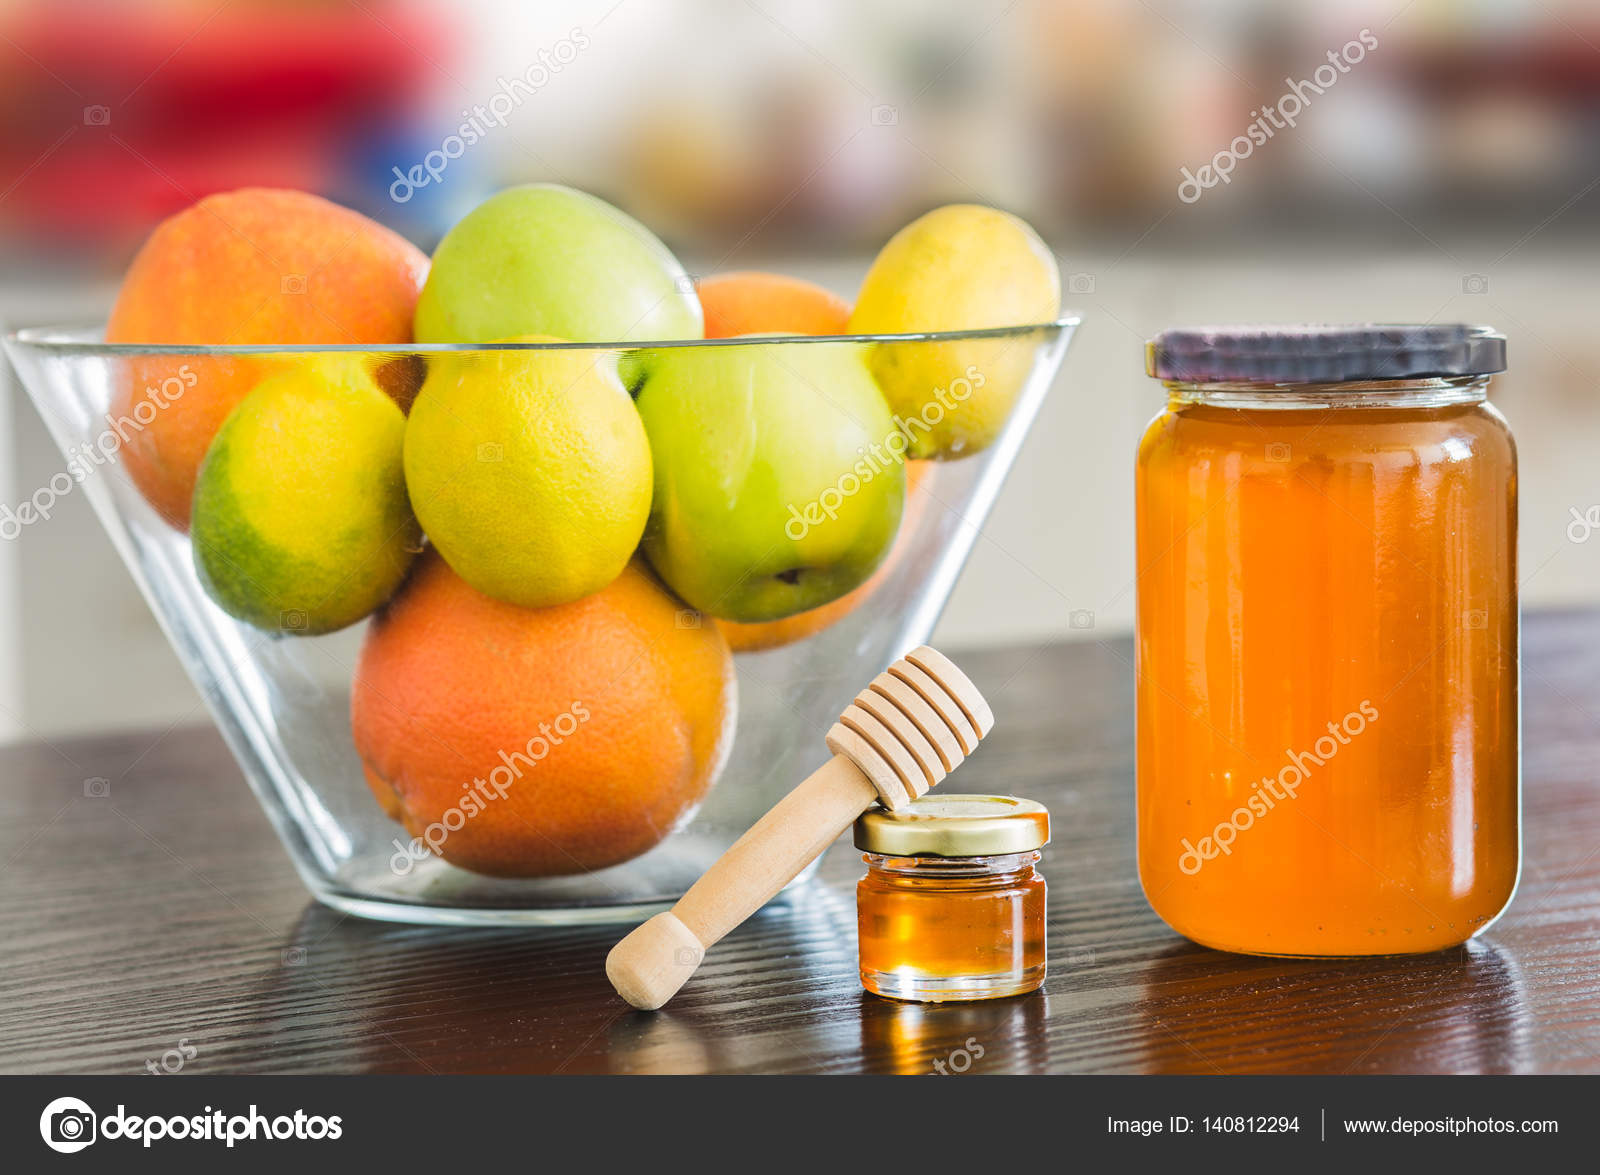 Big And Small Glass Jar Of Honey With Wooden Spoon And Bowl Of